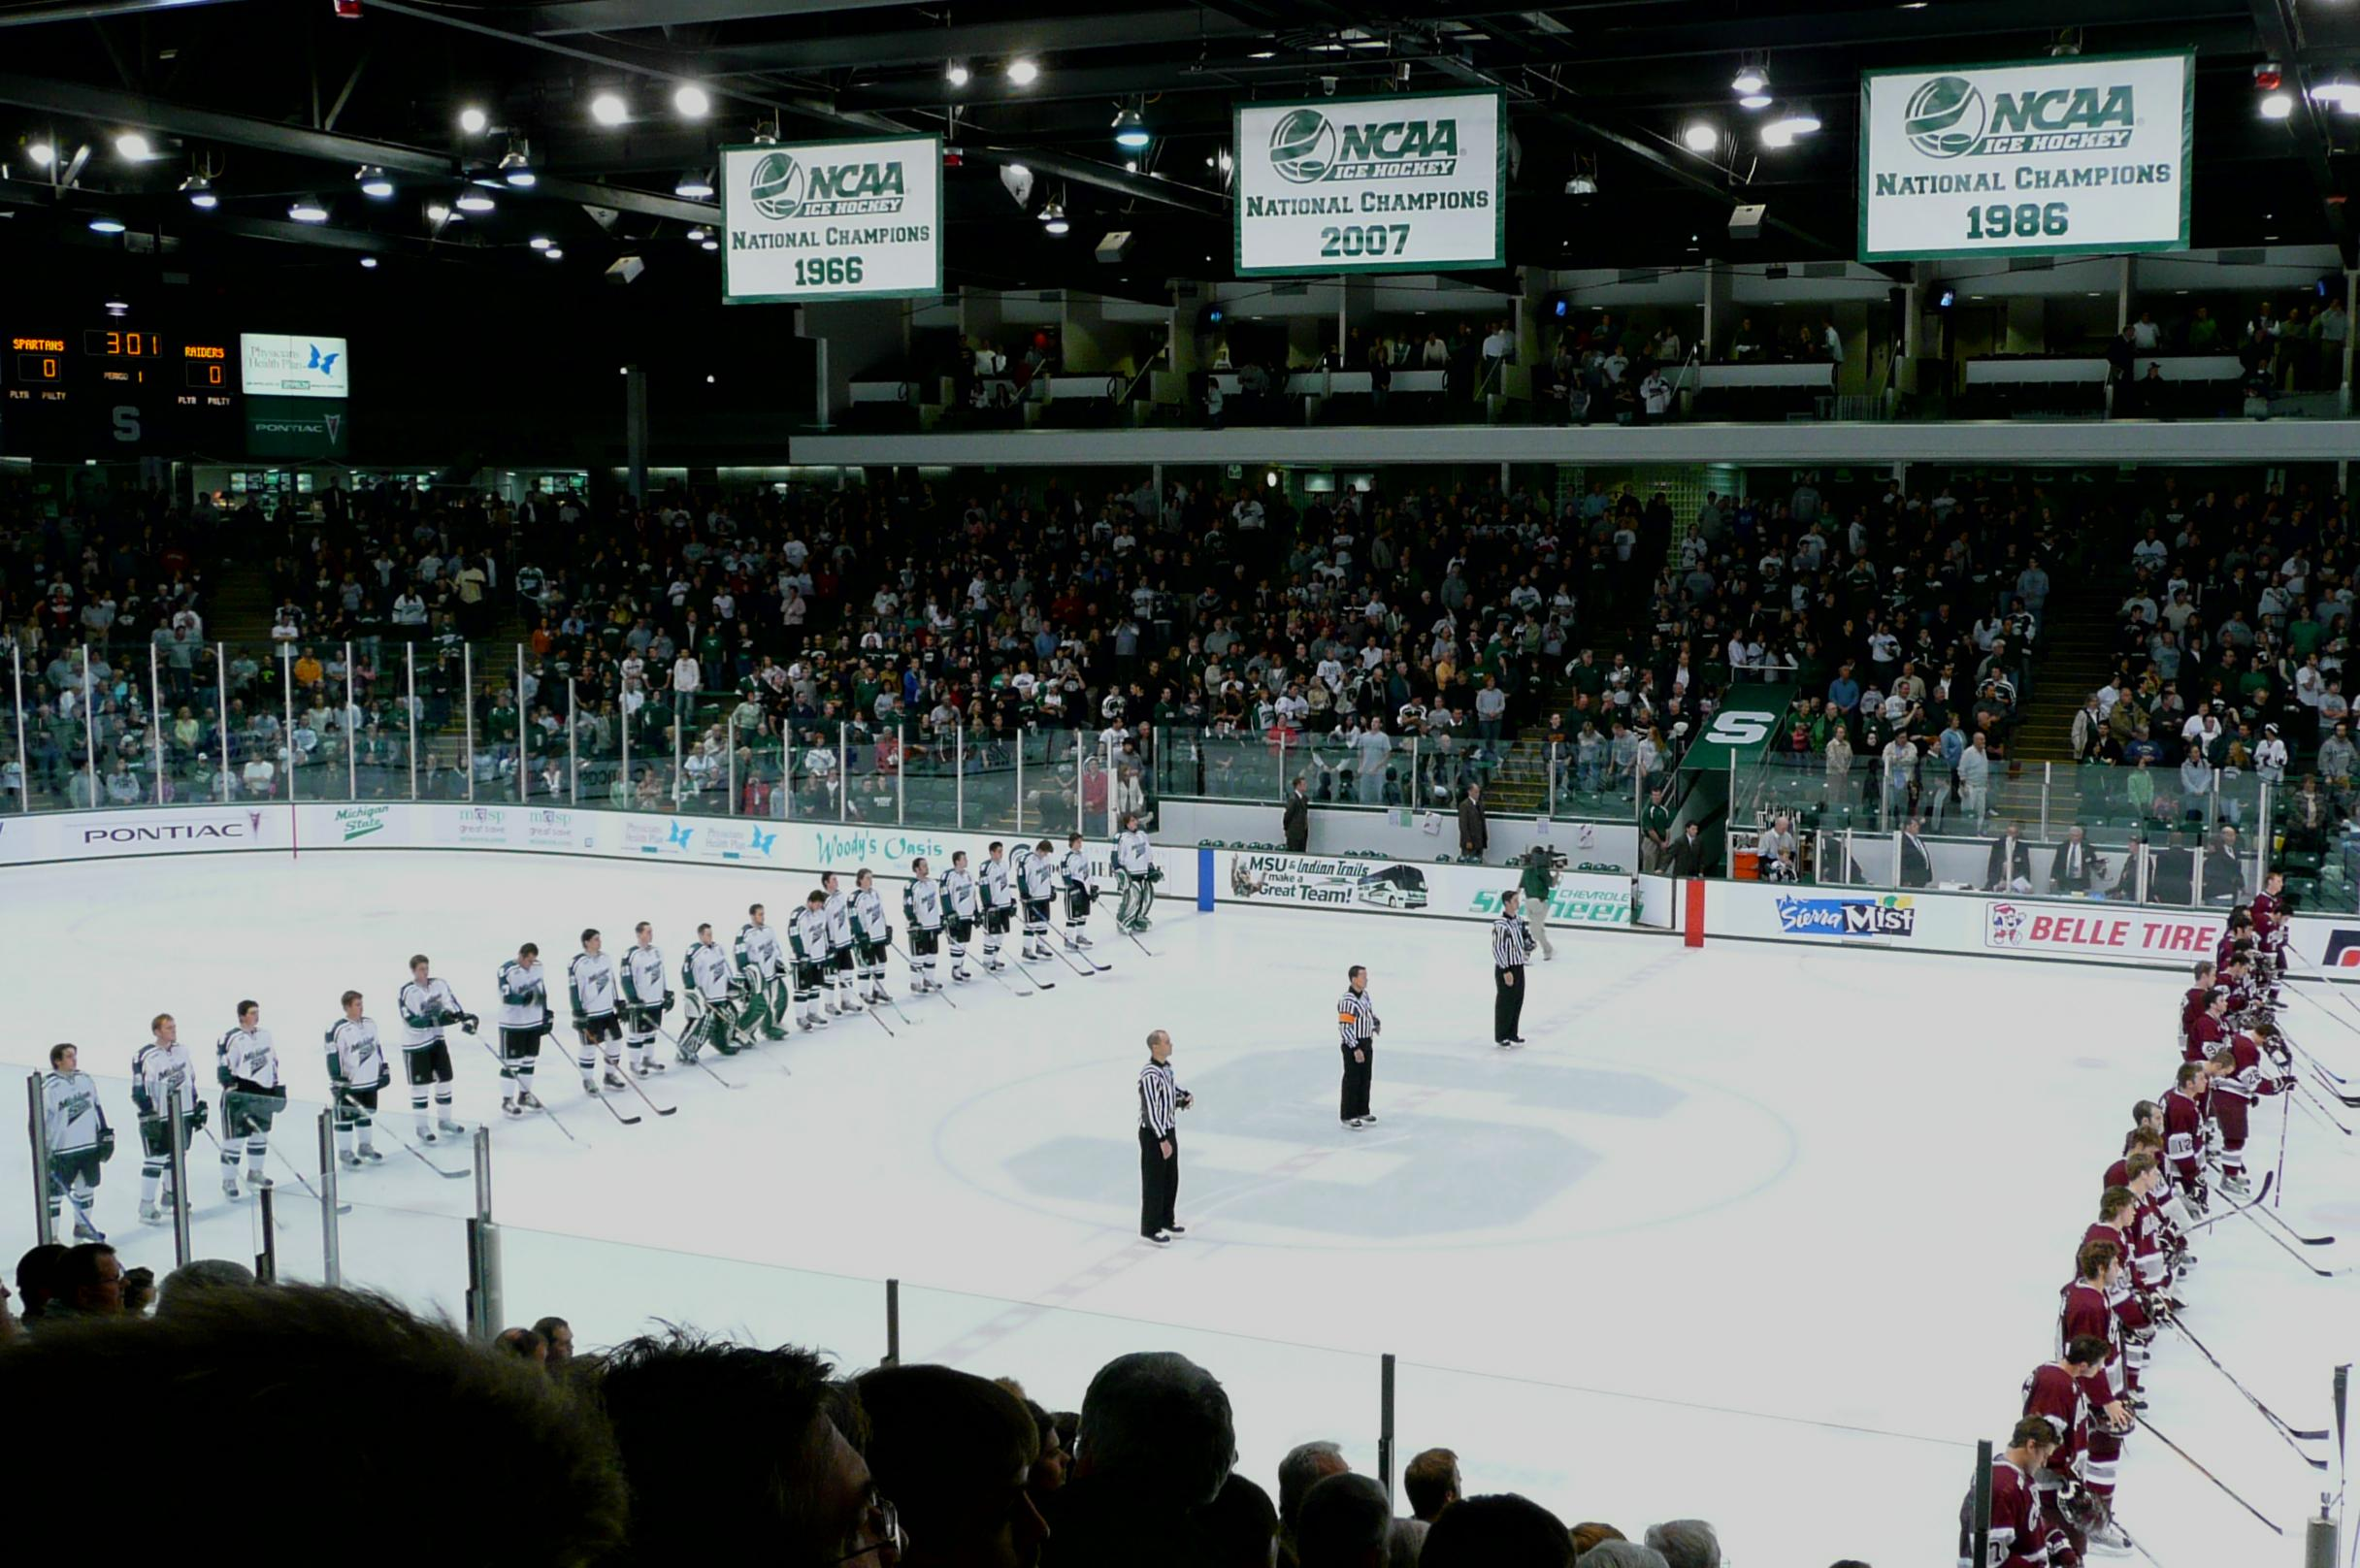 Munn Ice Arena Section H Row 14 Seat 16